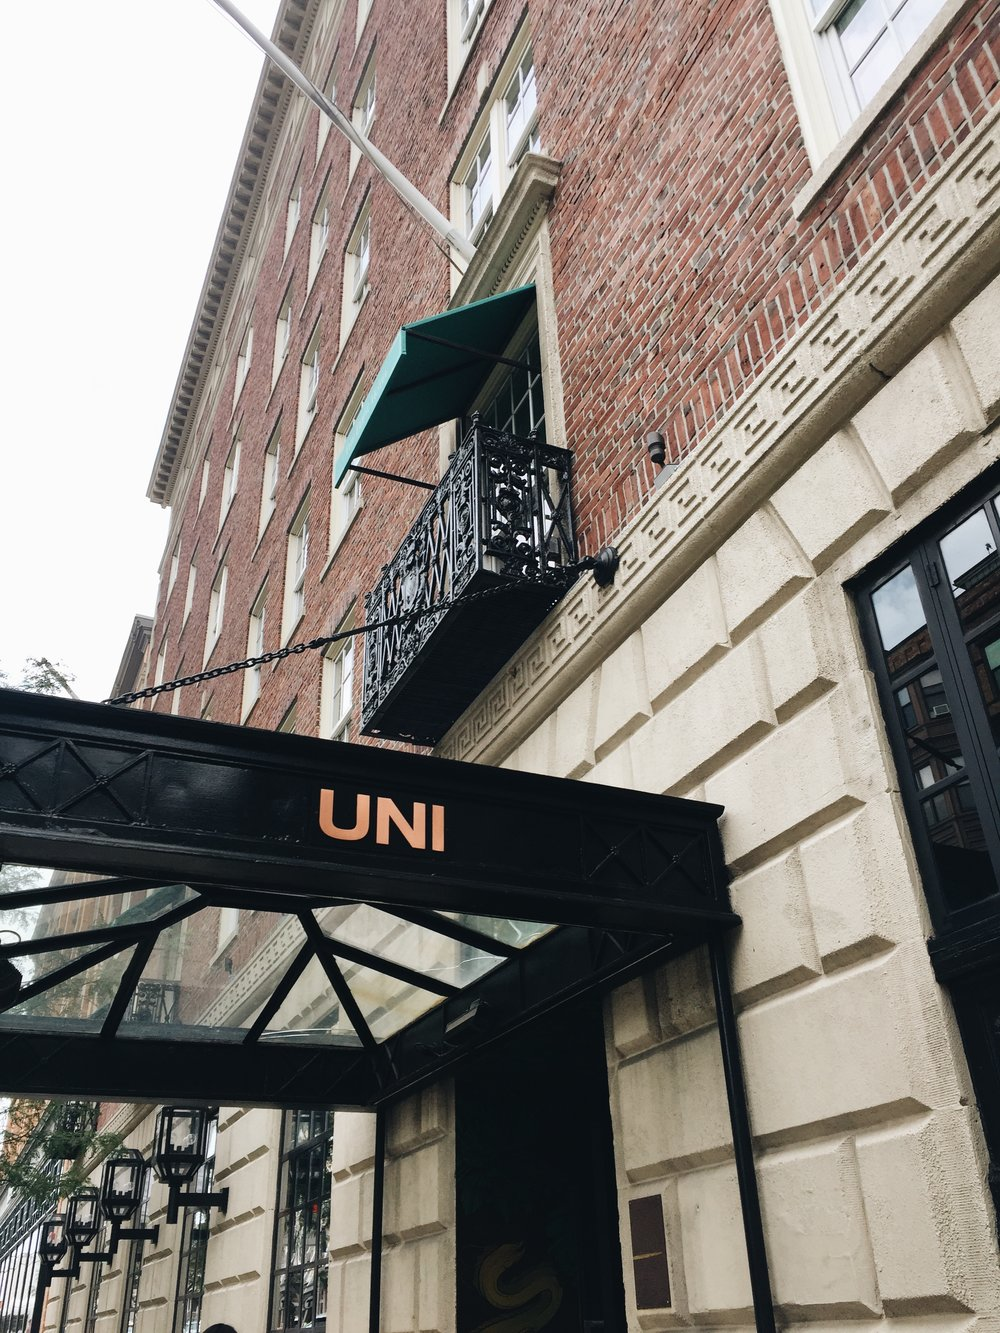 UNI is found inside the Eliot Hotel on 370A Commonwealth Avenue, Boston, MA 02215 in the Back Bay, where Clio was formerly located.